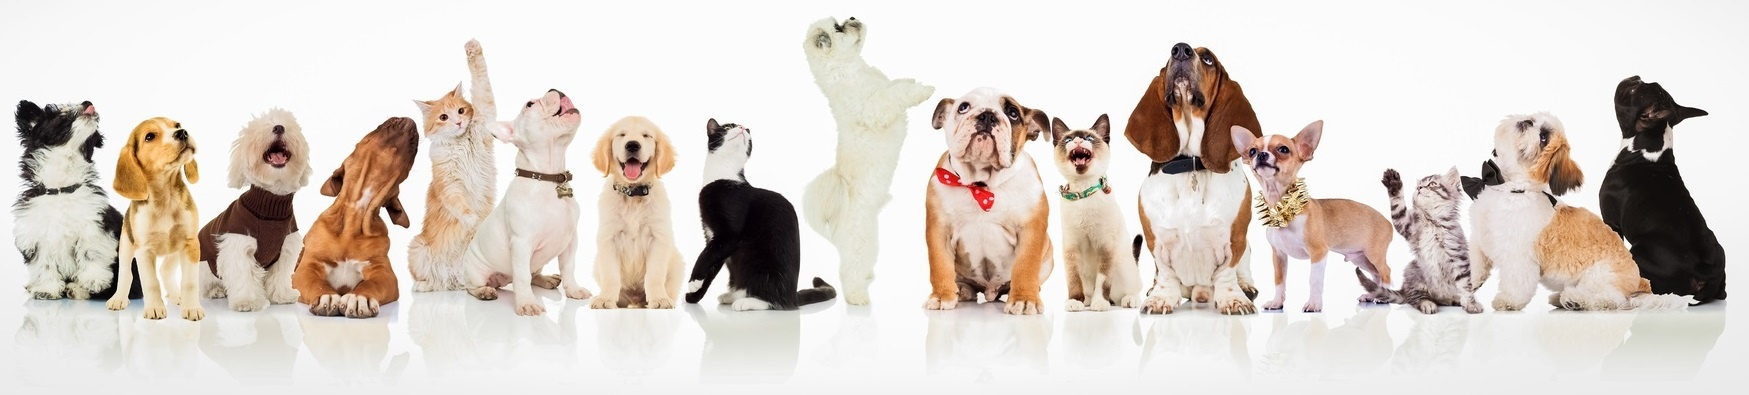 Dogs looking a pet protection plan - jp-1.jpg